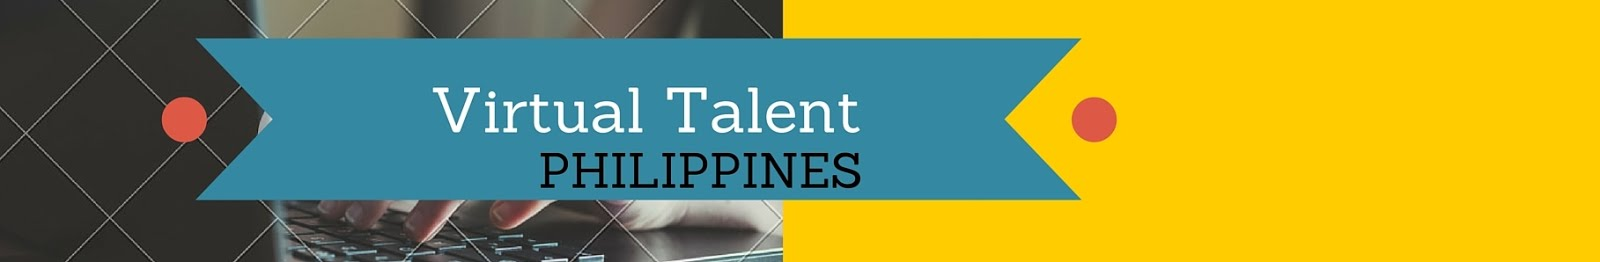 Virtual Talent Philippines